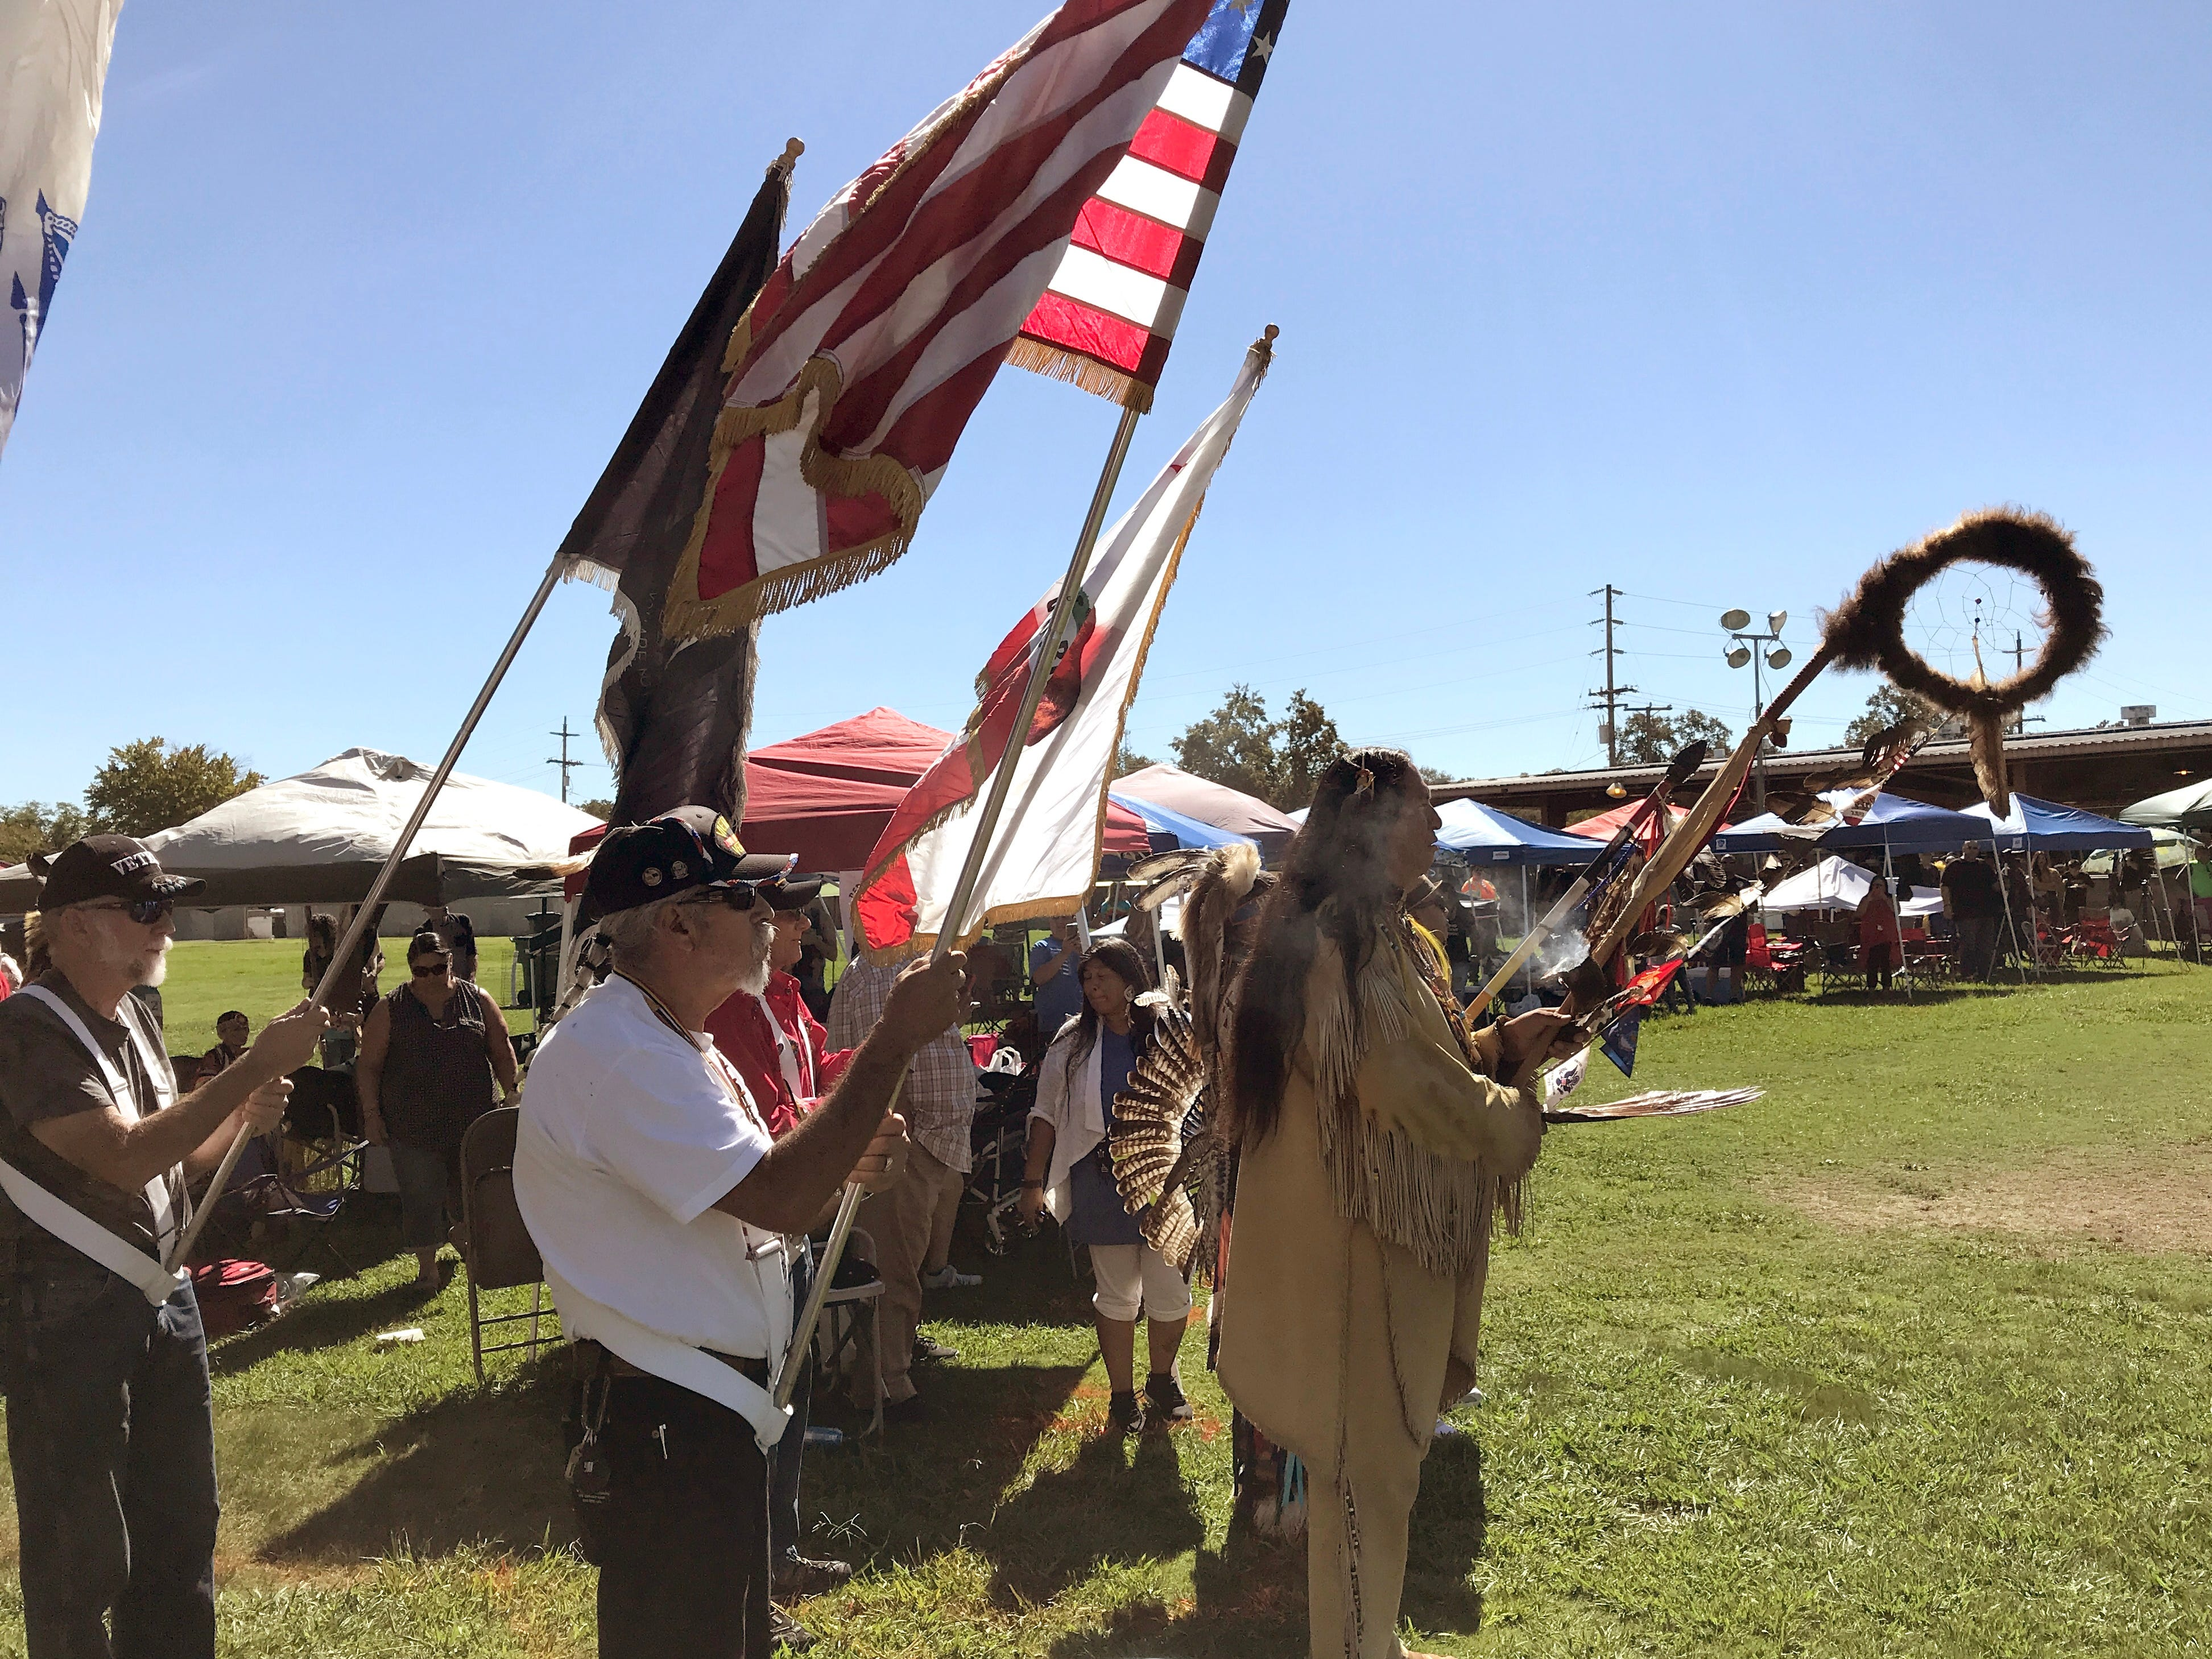 The grand entry Saturday afternoon at the Stillwater Powwow in Anderson.